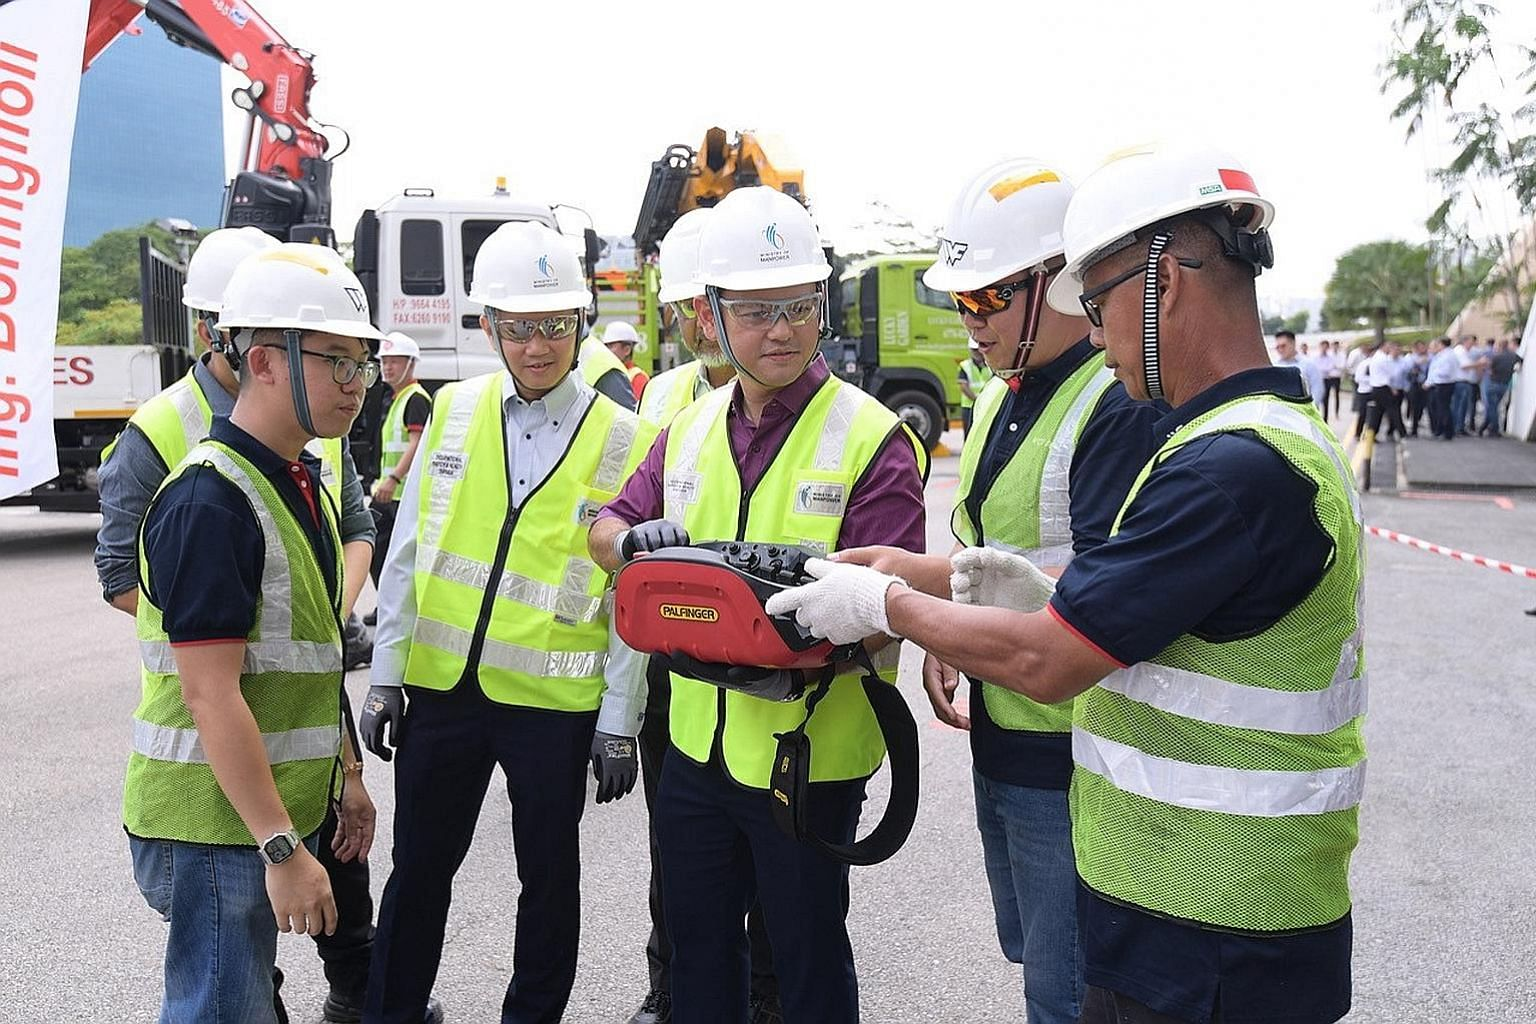 Minister of State for Manpower Zaqy Mohamad trying his hand at operating a lorry crane remotely via a control box. The Ministry of Manpower and the Workplace Safety and Health Council will launch two new sets of guidelines on the safe use of lorry cr